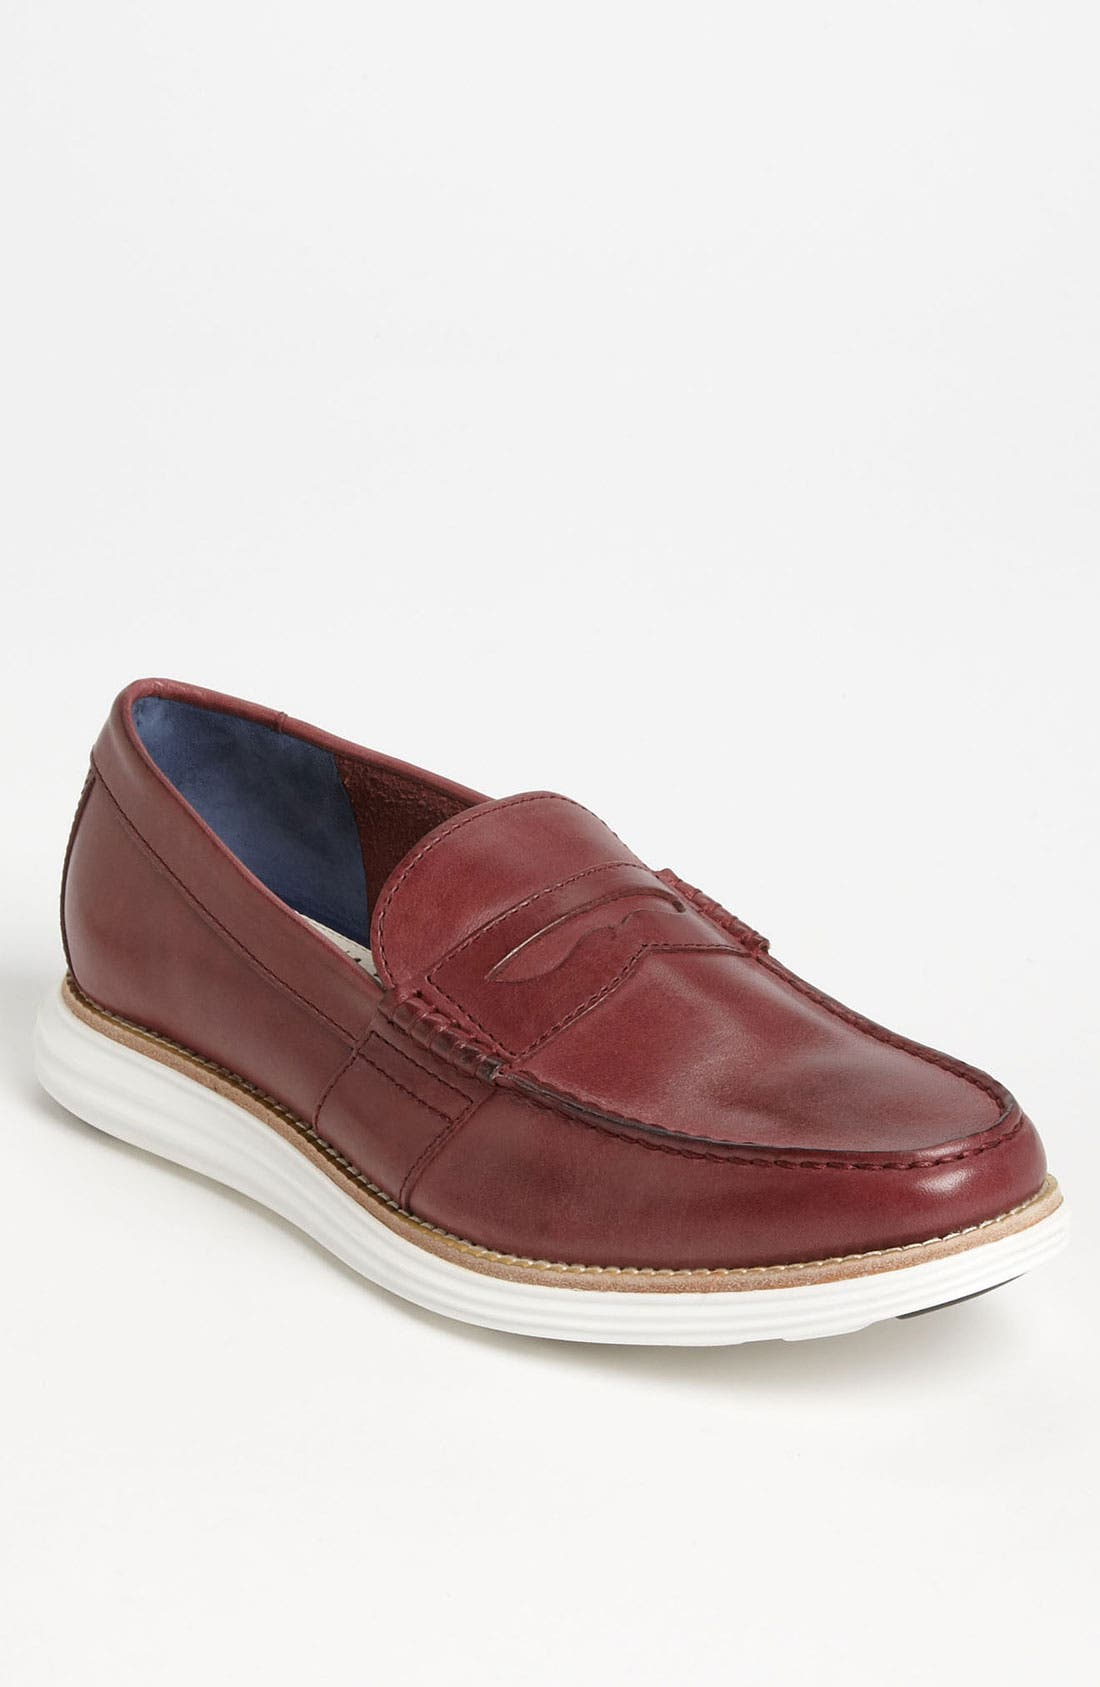 Main Image - Cole Haan 'LunarGrand' Penny Loafer (Online Only)